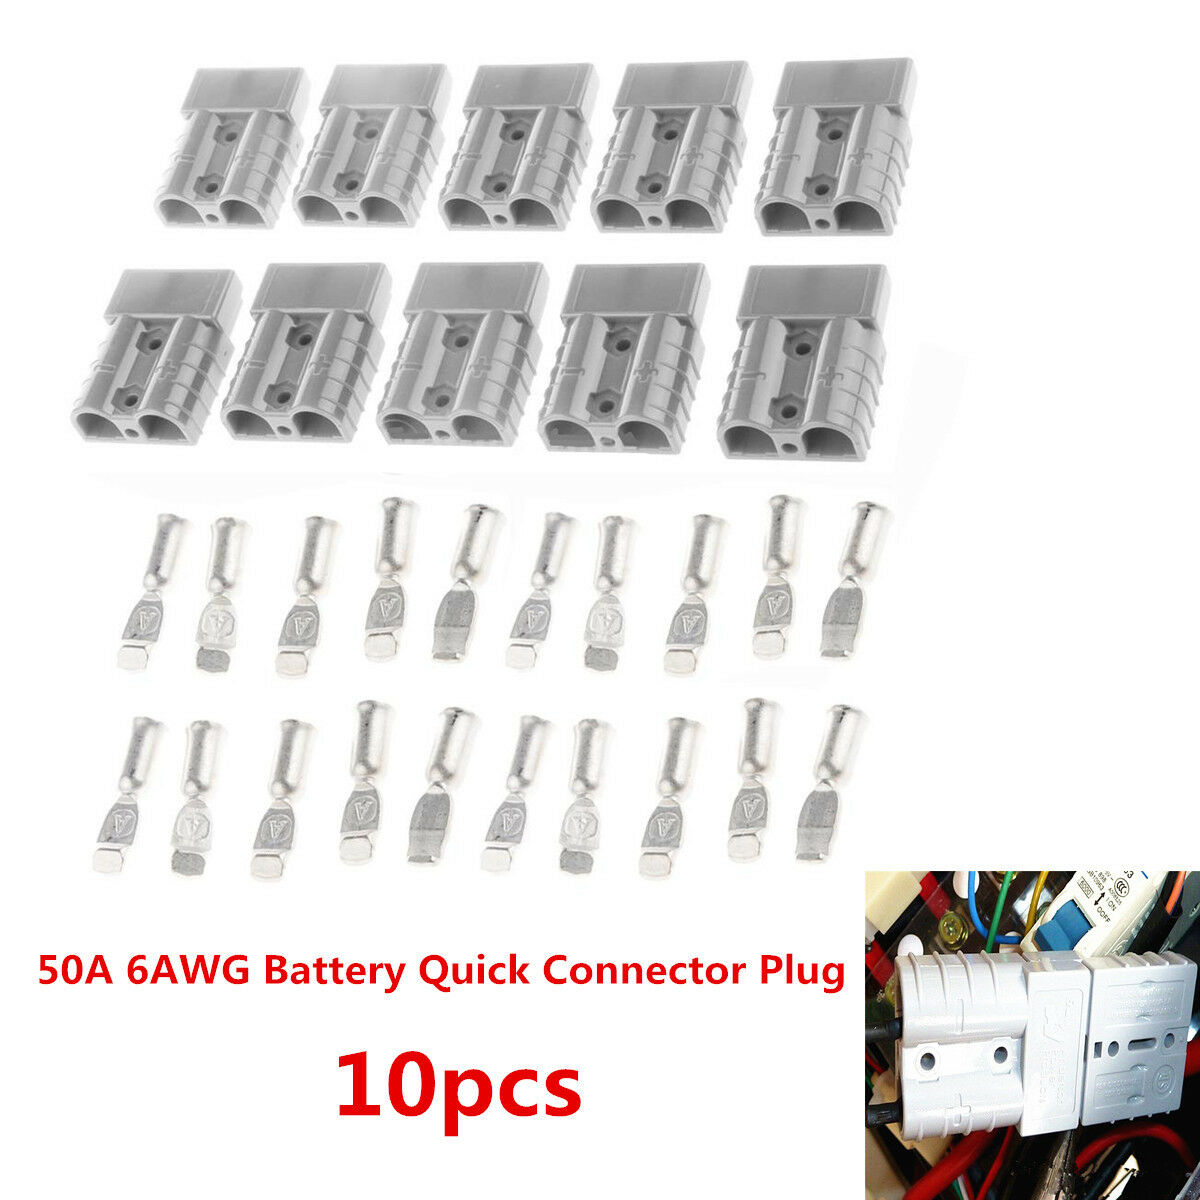 s l1600 battery quick connect 10pcs kit 50a wire harness plug disconnect battery quick connect wire harness plug at couponss.co